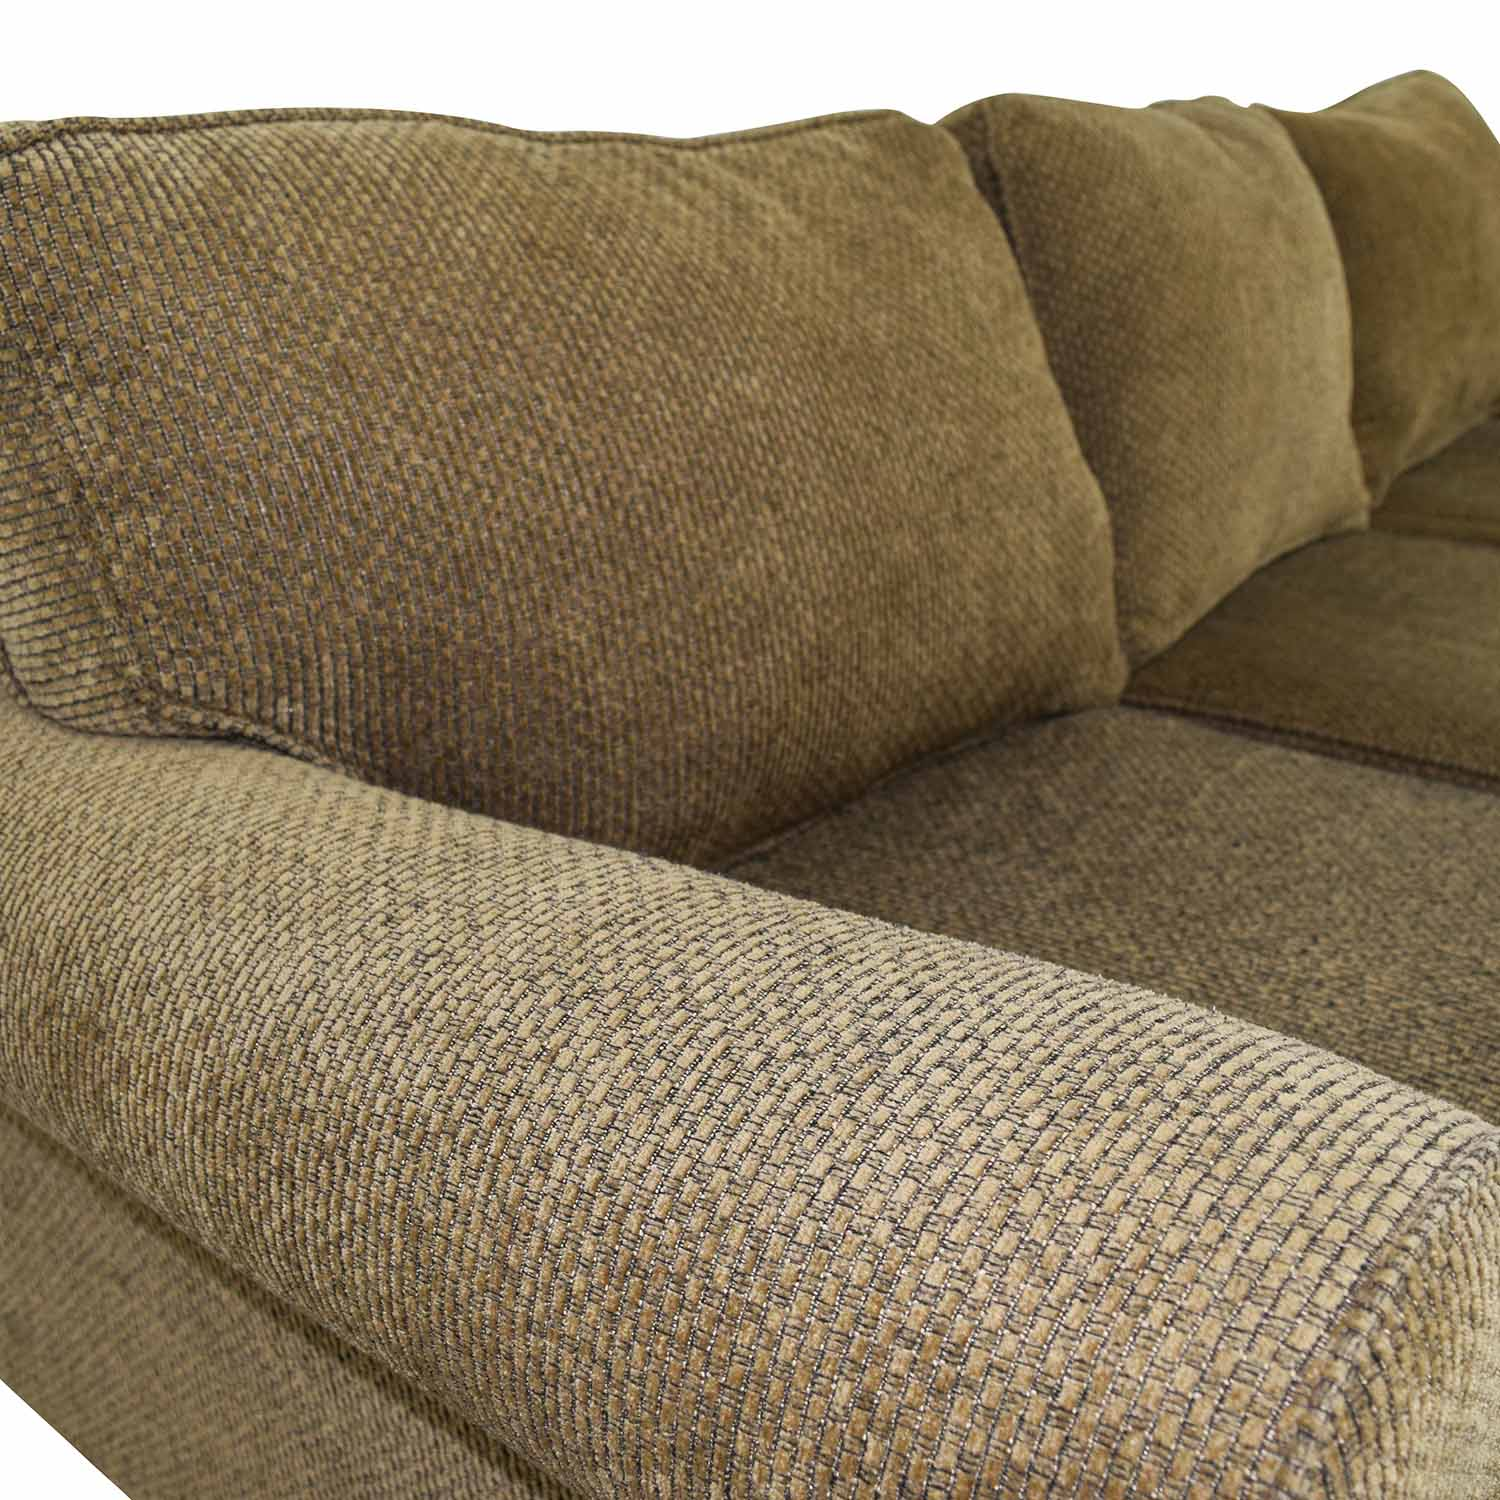 Bloomingdales Beige Tweed Fabric Sofa Sofas